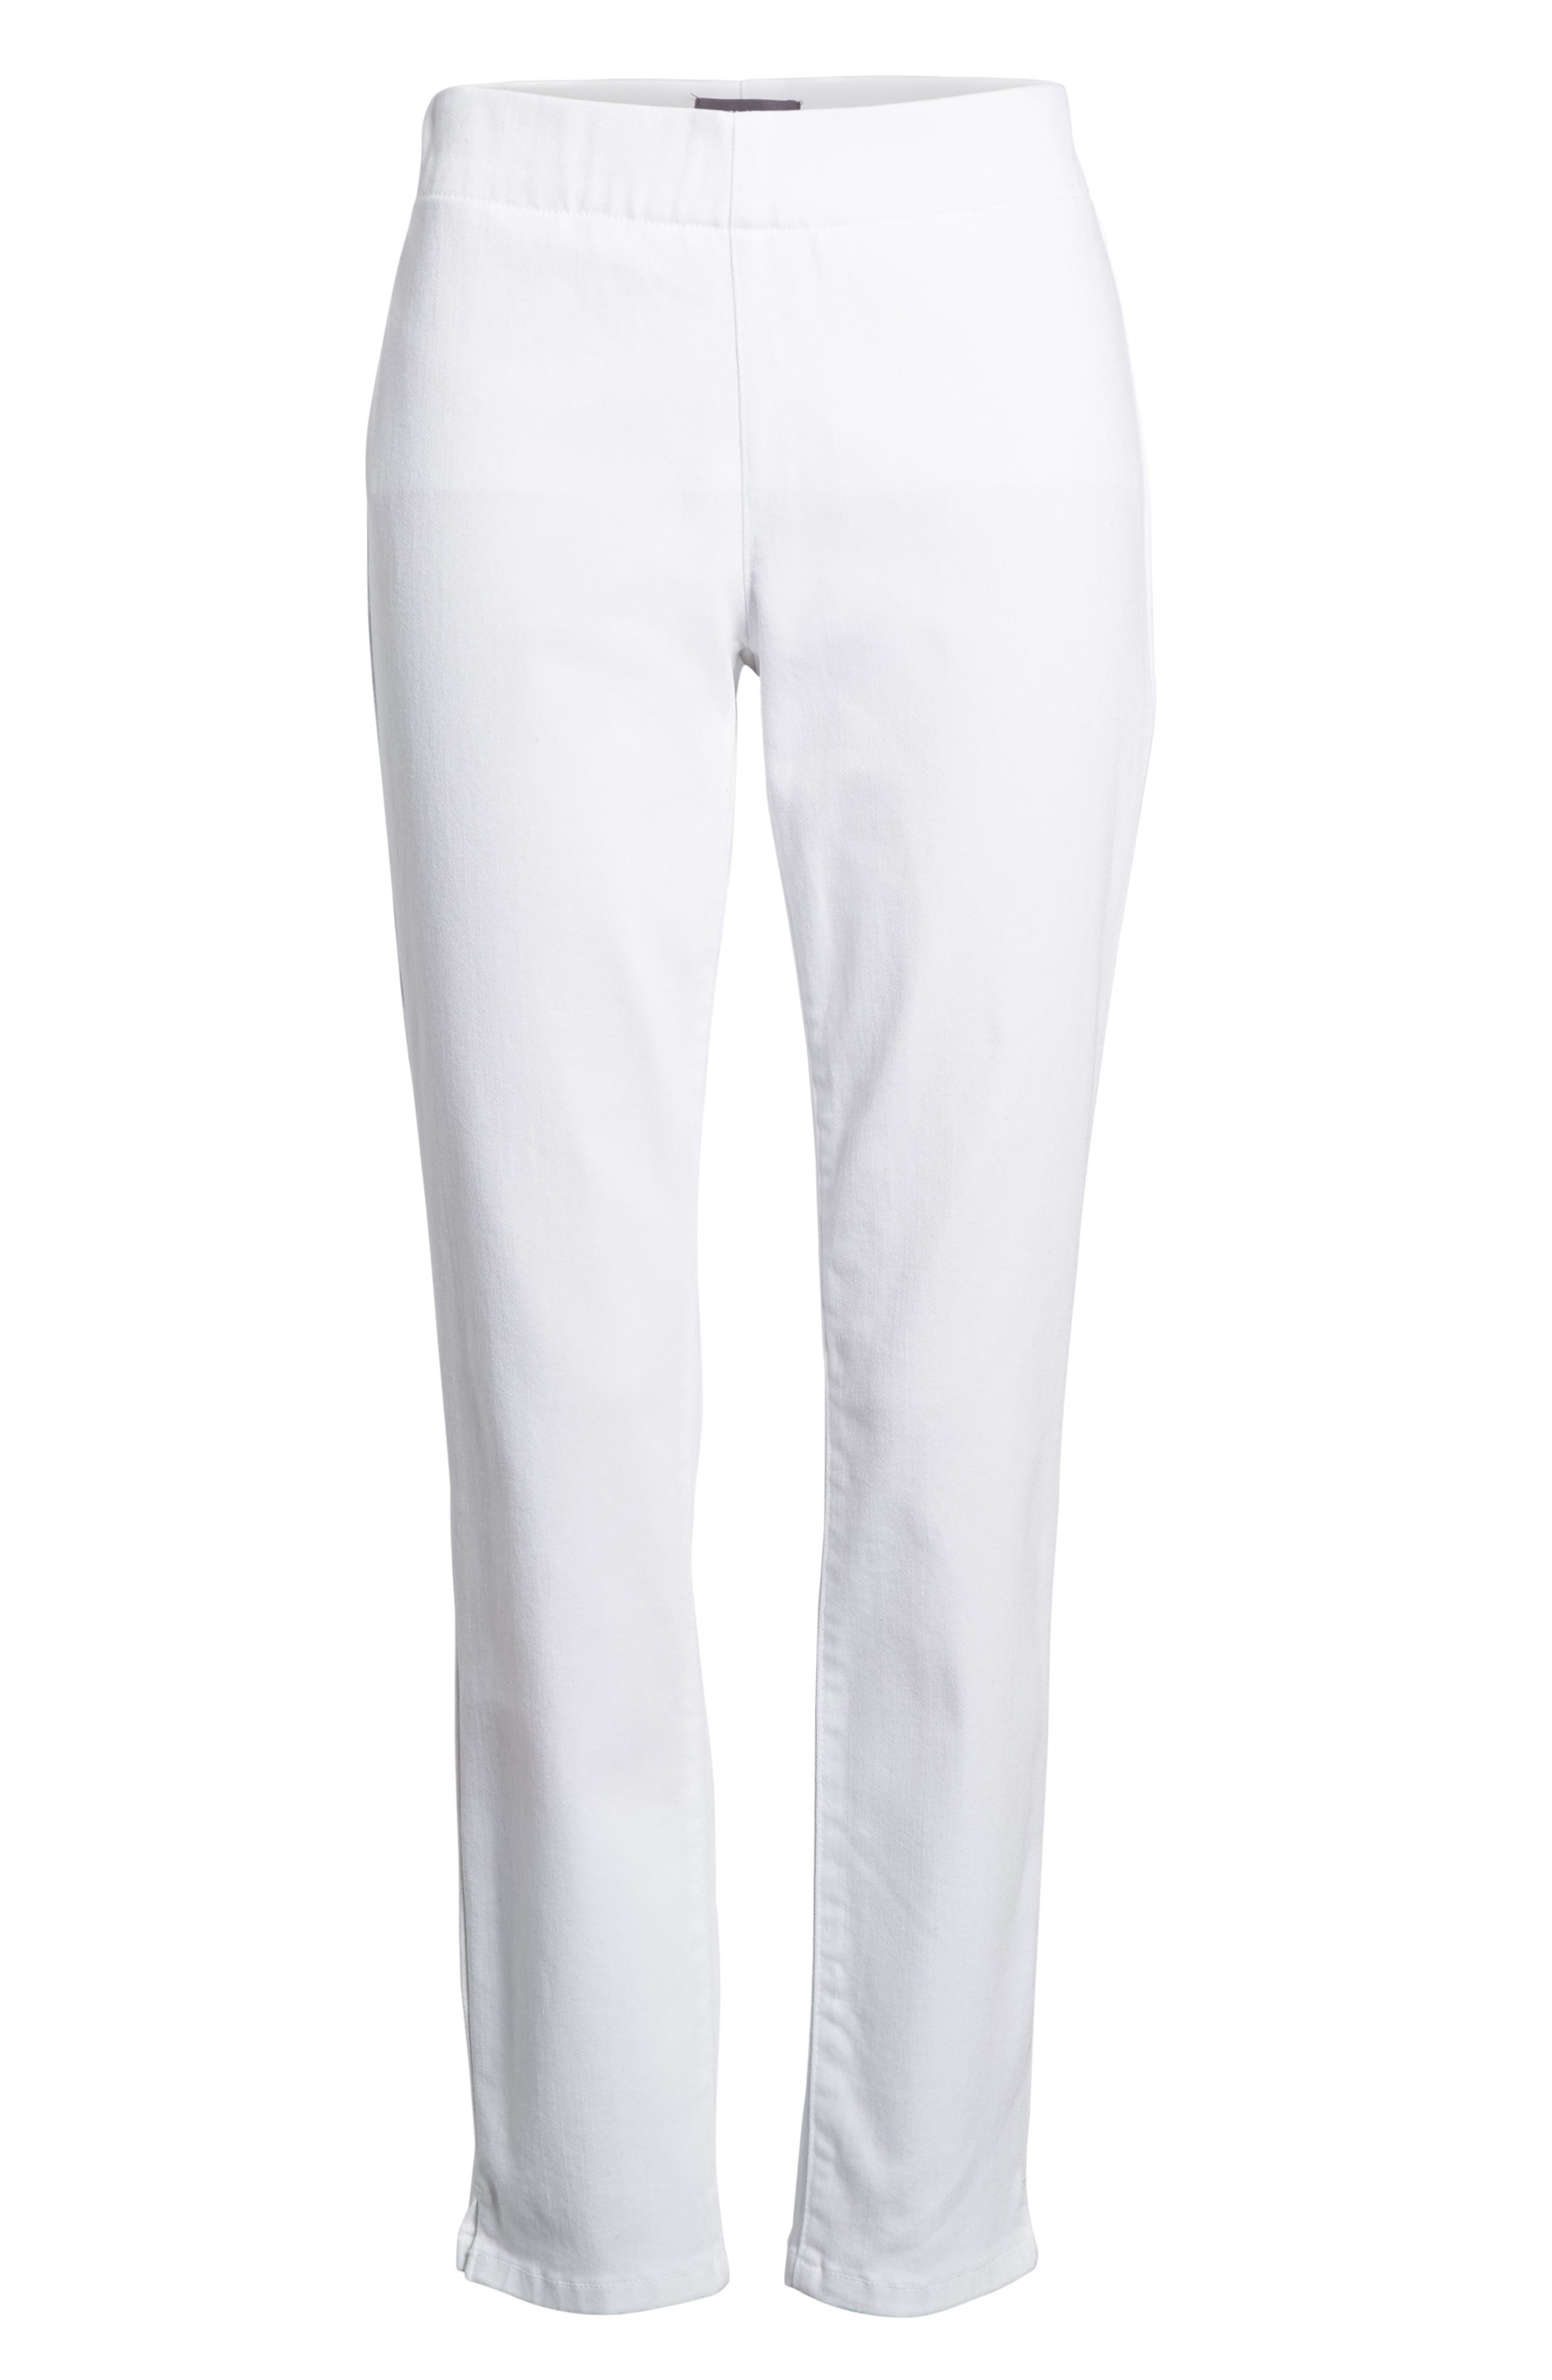 'Millie' Pull-On Stretch Ankle Skinny Jeans,                             Alternate thumbnail 2, color,                             198